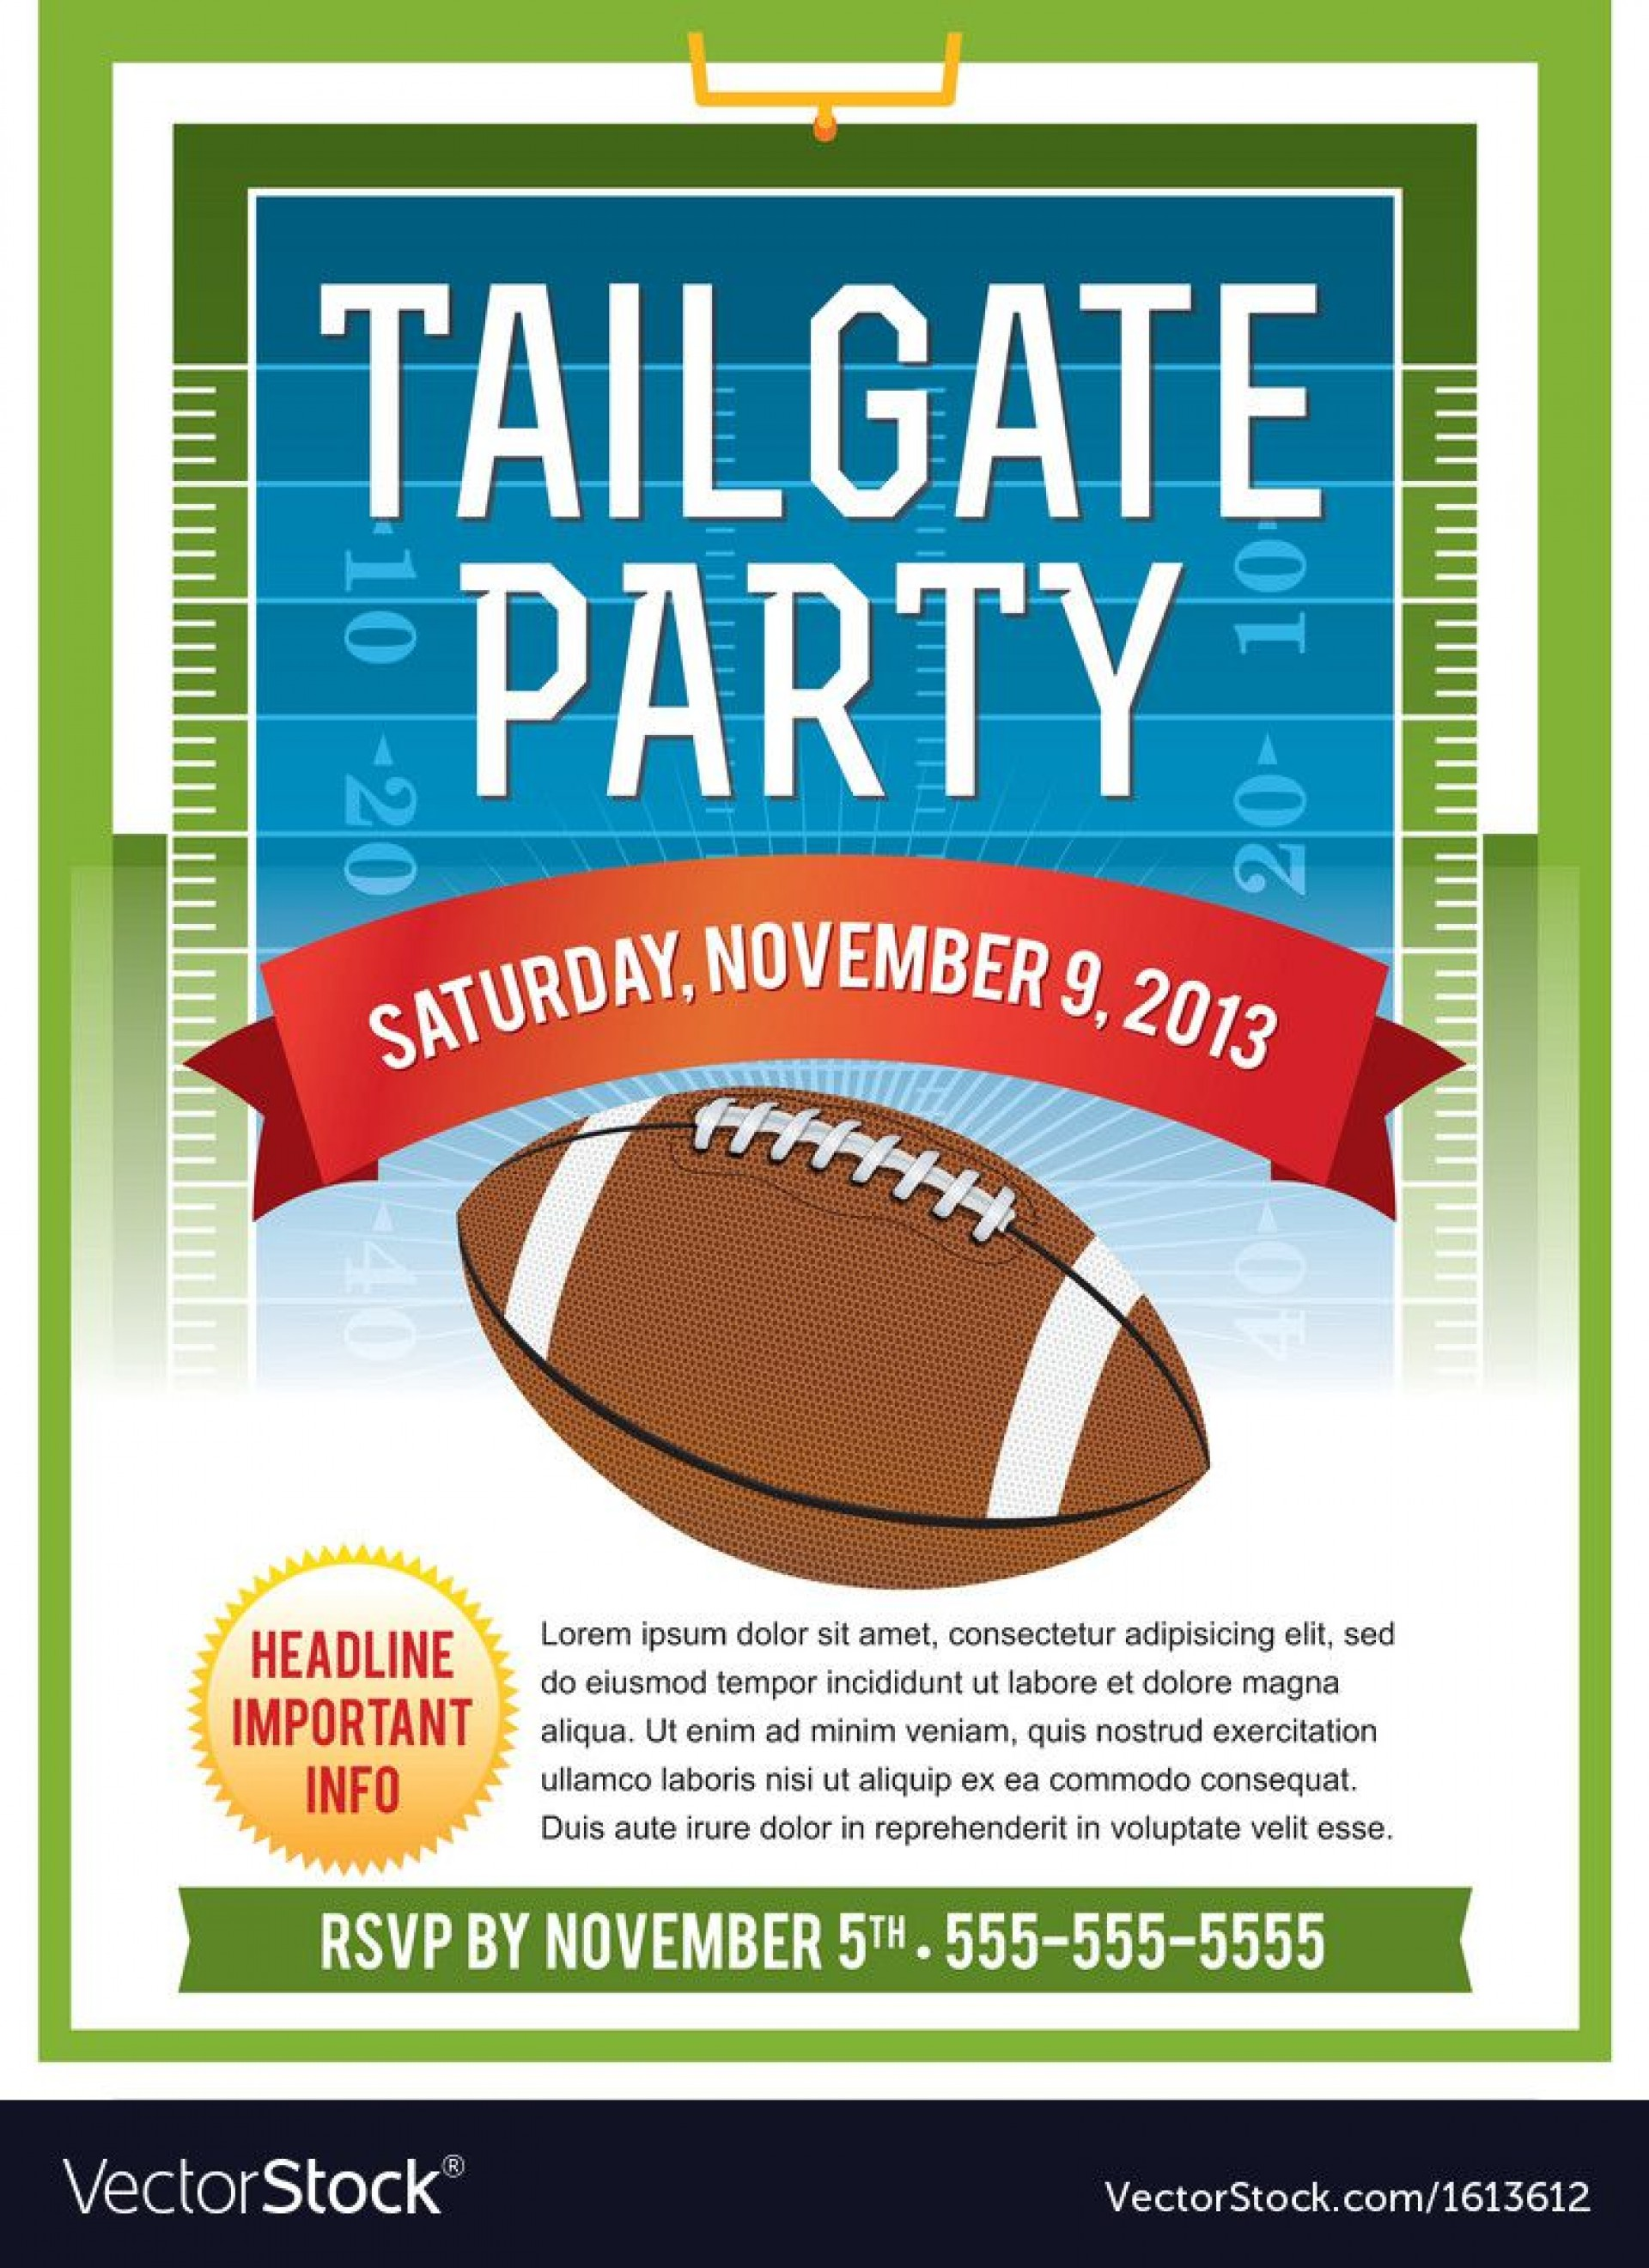 006 Excellent Free Tailgate Party Flyer Template Download Photo 1920